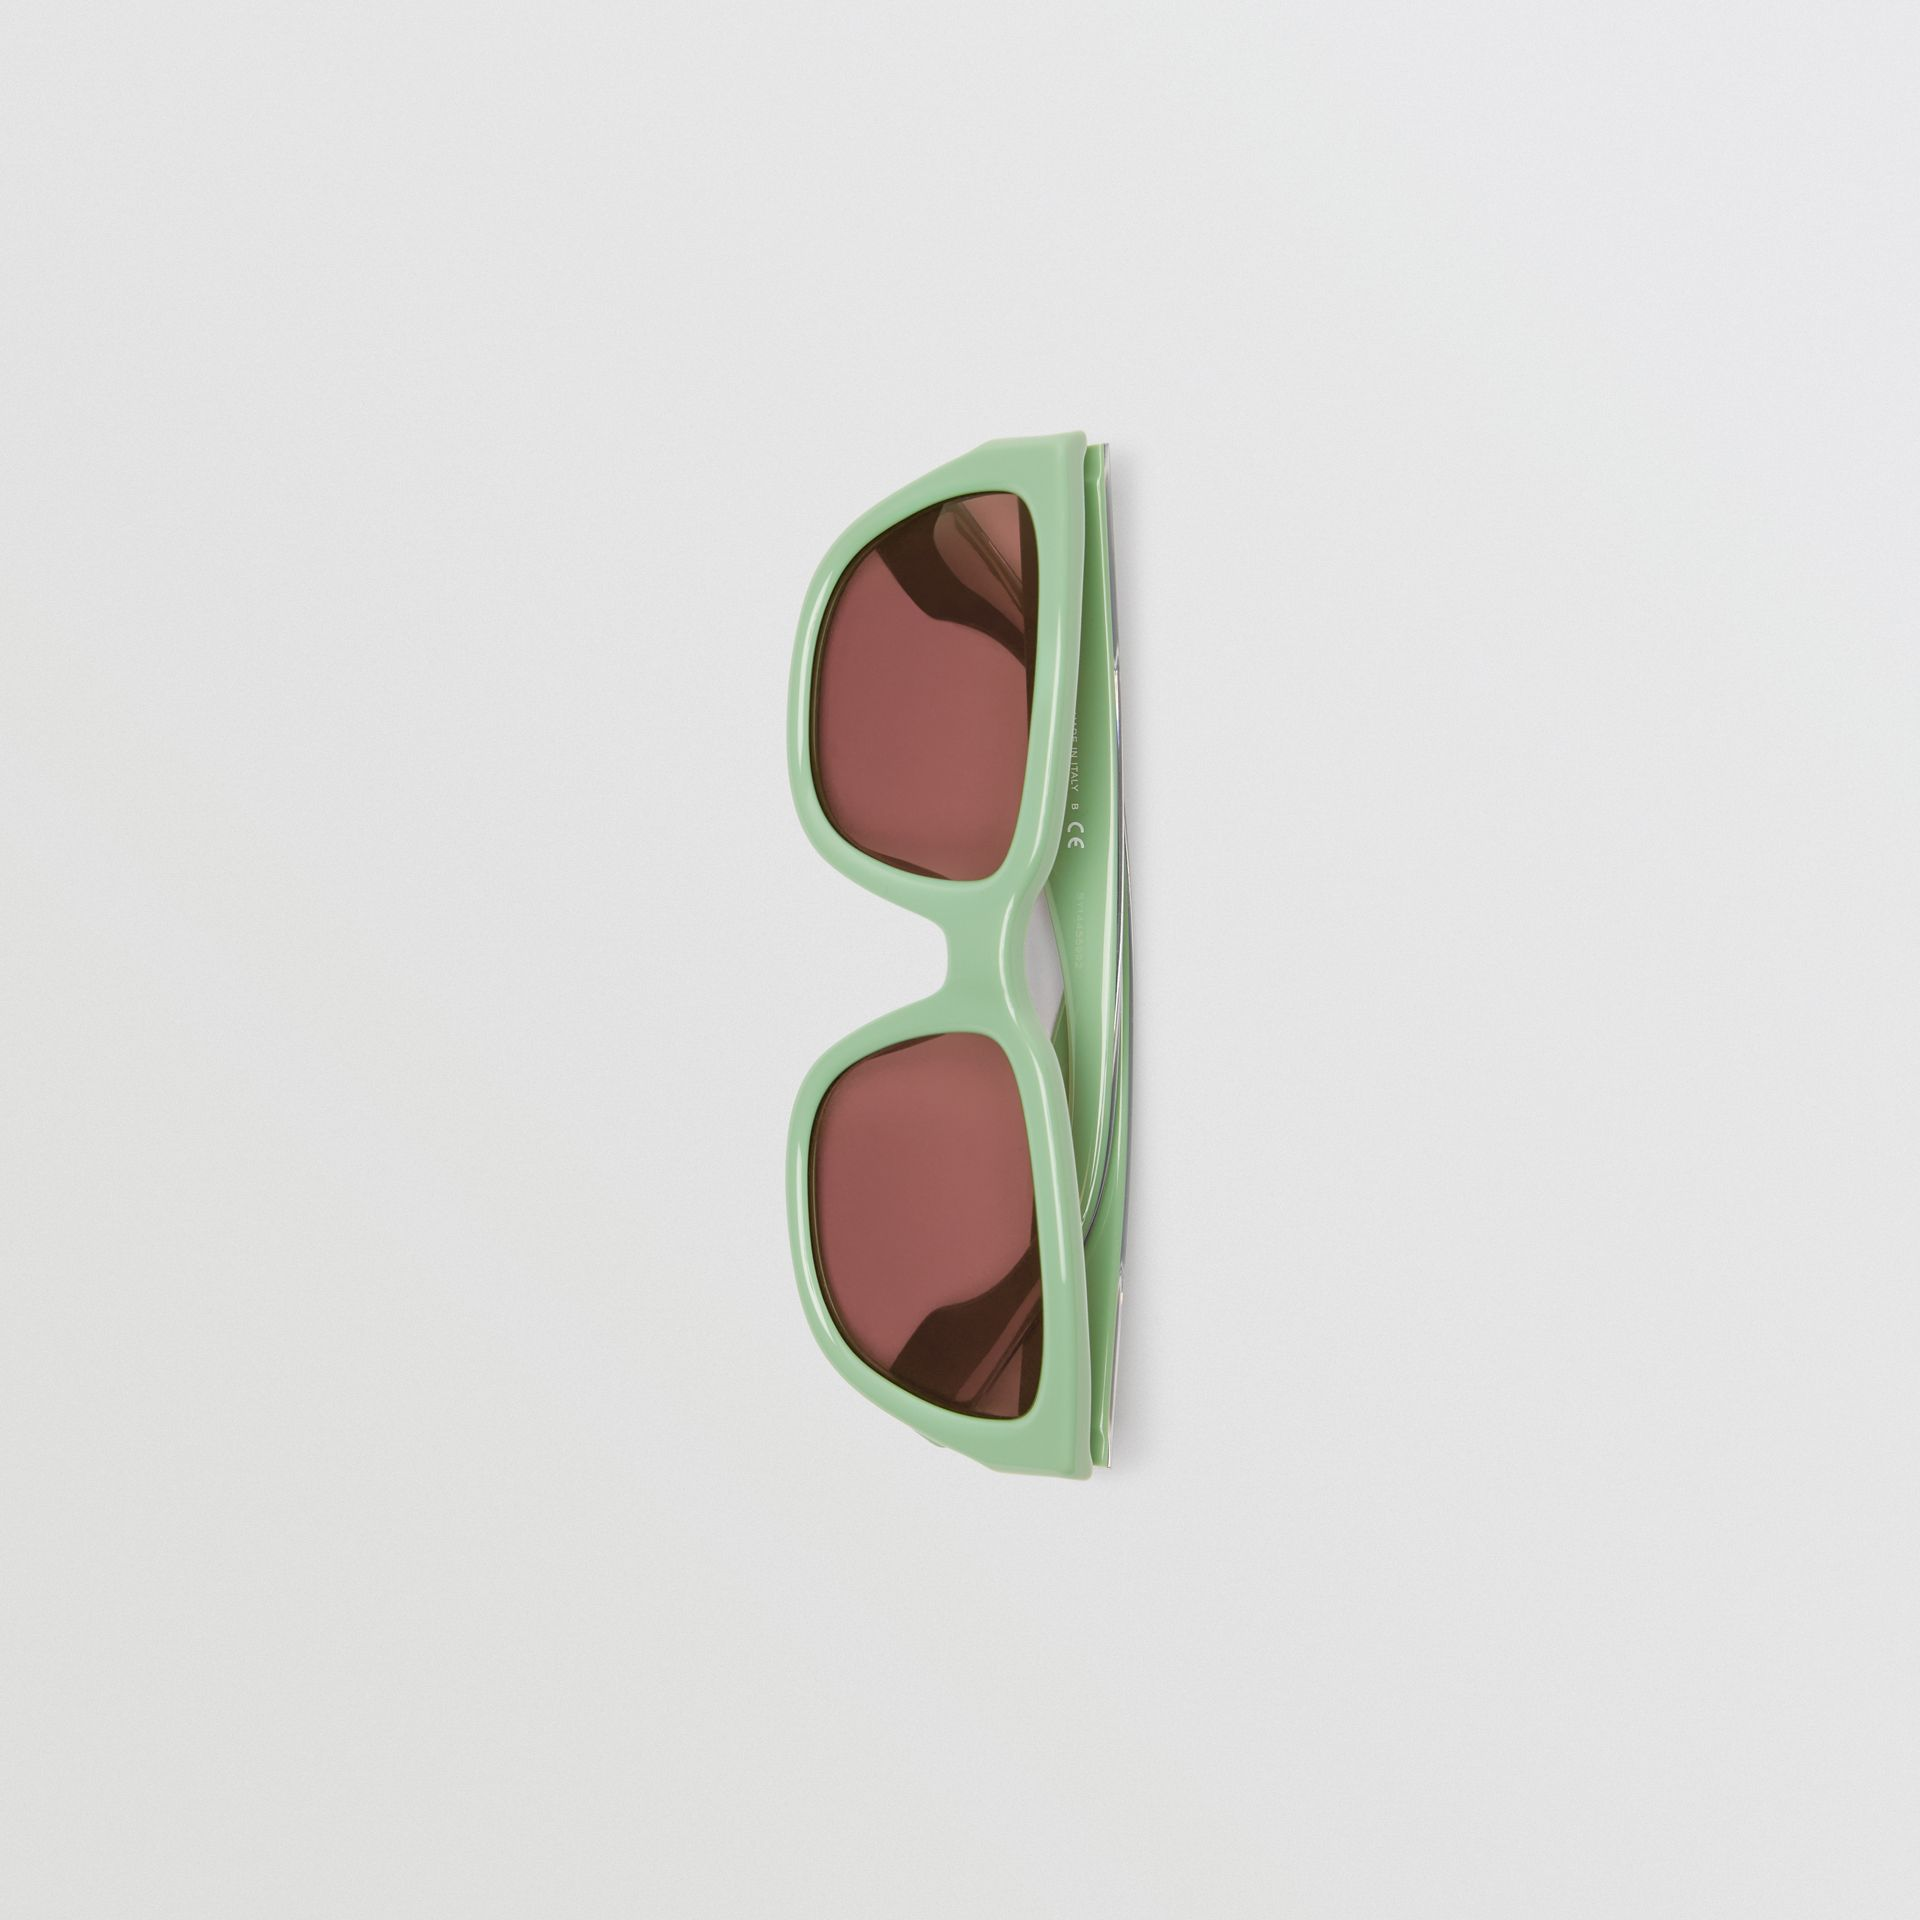 Square Frame Sunglasses in Mint Green - Women | Burberry United Kingdom - gallery image 3